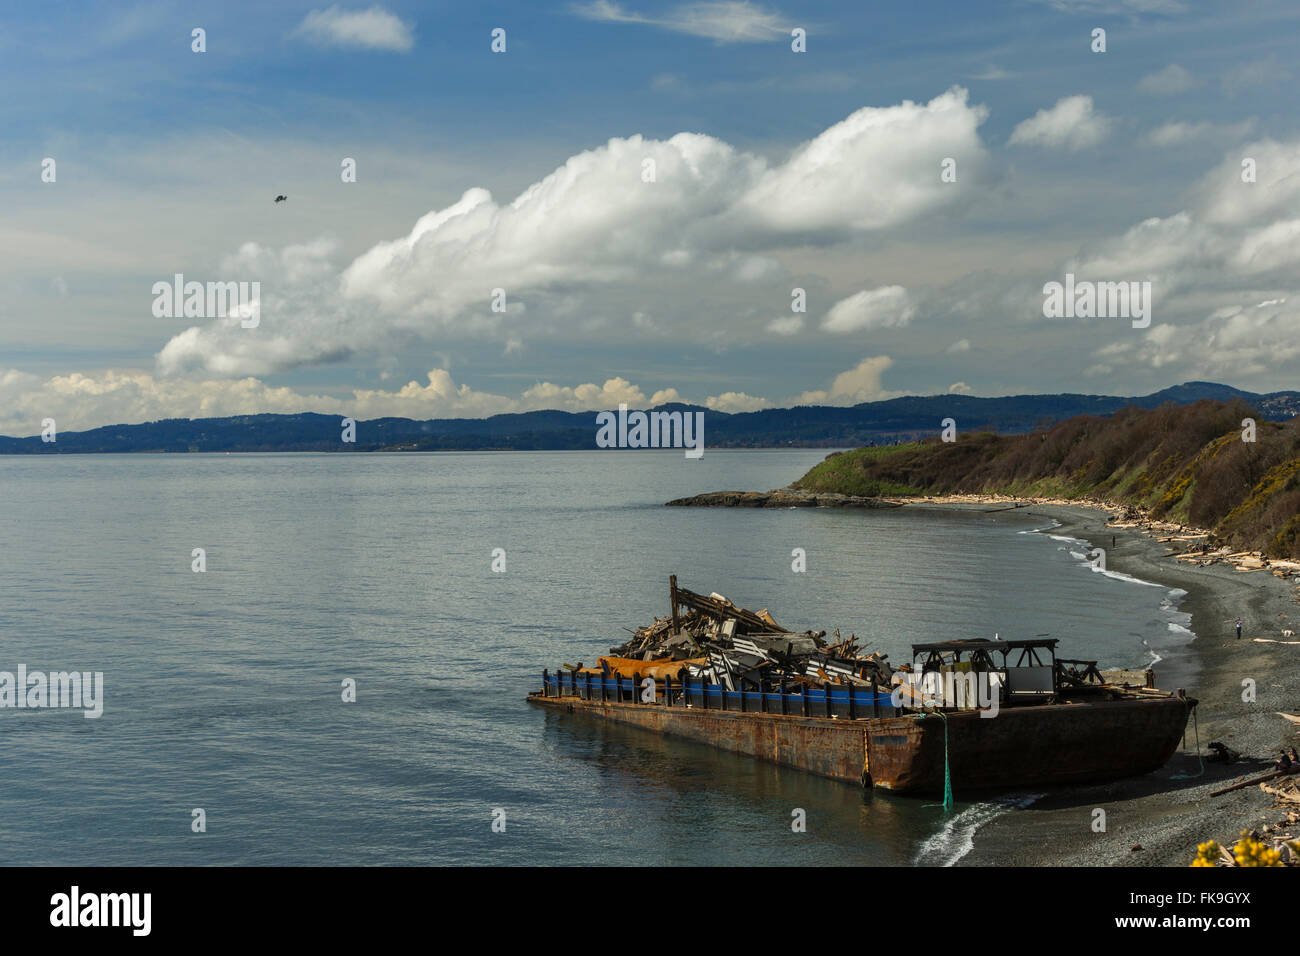 Beached barge with load of junk at Clover Point beach-Victoria, British Columbia, Canada. - Stock Image